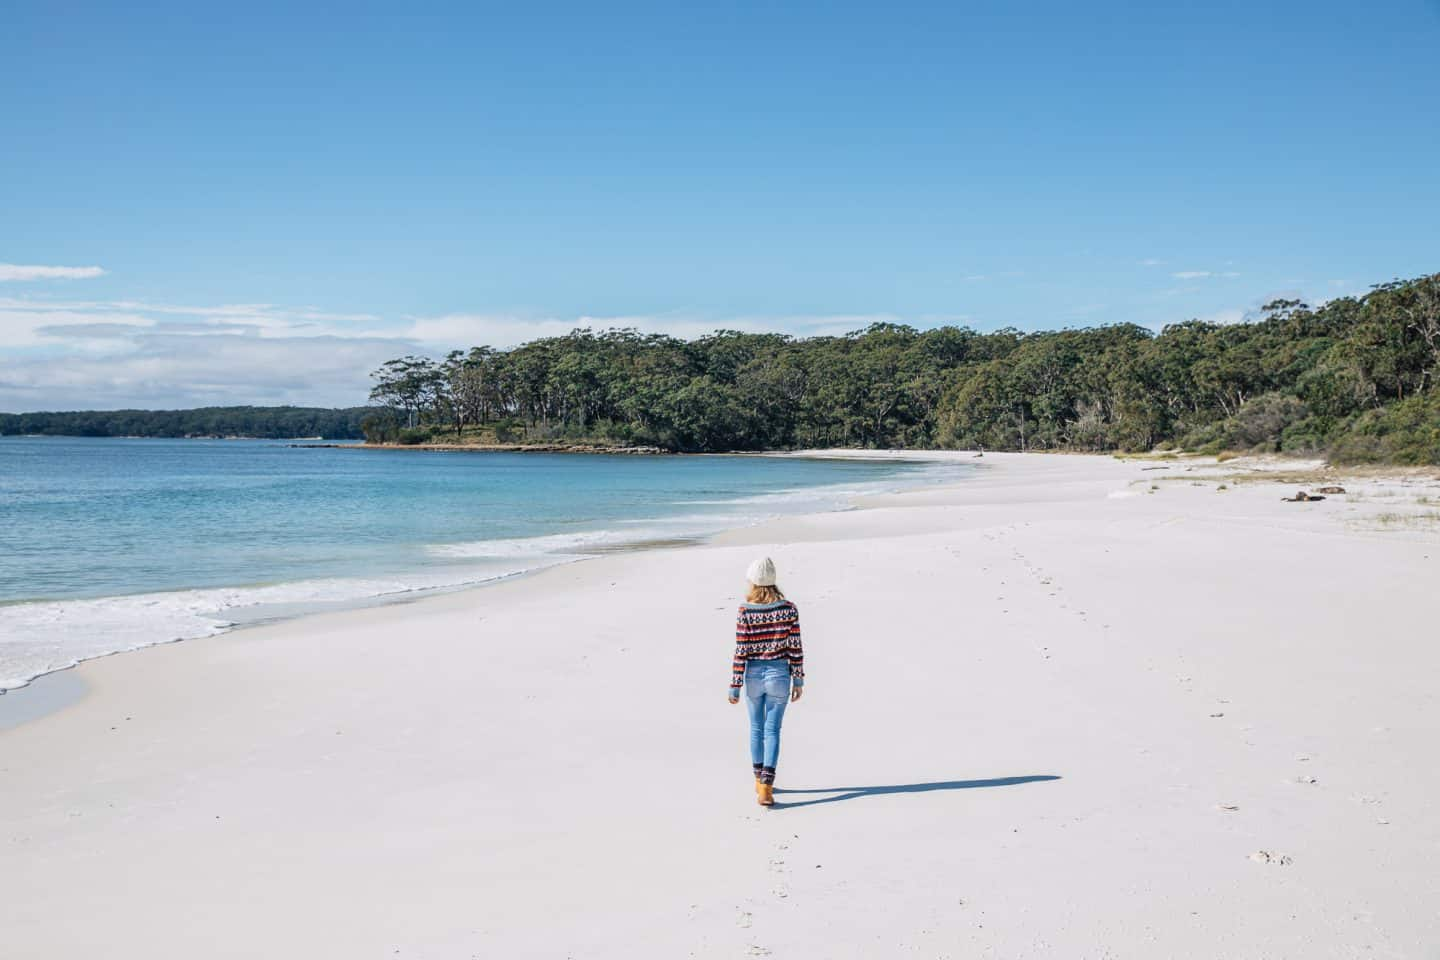 things to do in jervis bay, jervis bay things to do, jervis bay activities, jervis bay attractions, jervis bay camping, jervis bay holiday park, things to do jervis bay, things to do at jervis bay, what to do in jervis bay, beaches in jervis bay, accommodation in jervis bay, beaches at jervis bay, green patch beach, green patch beach jervis bay